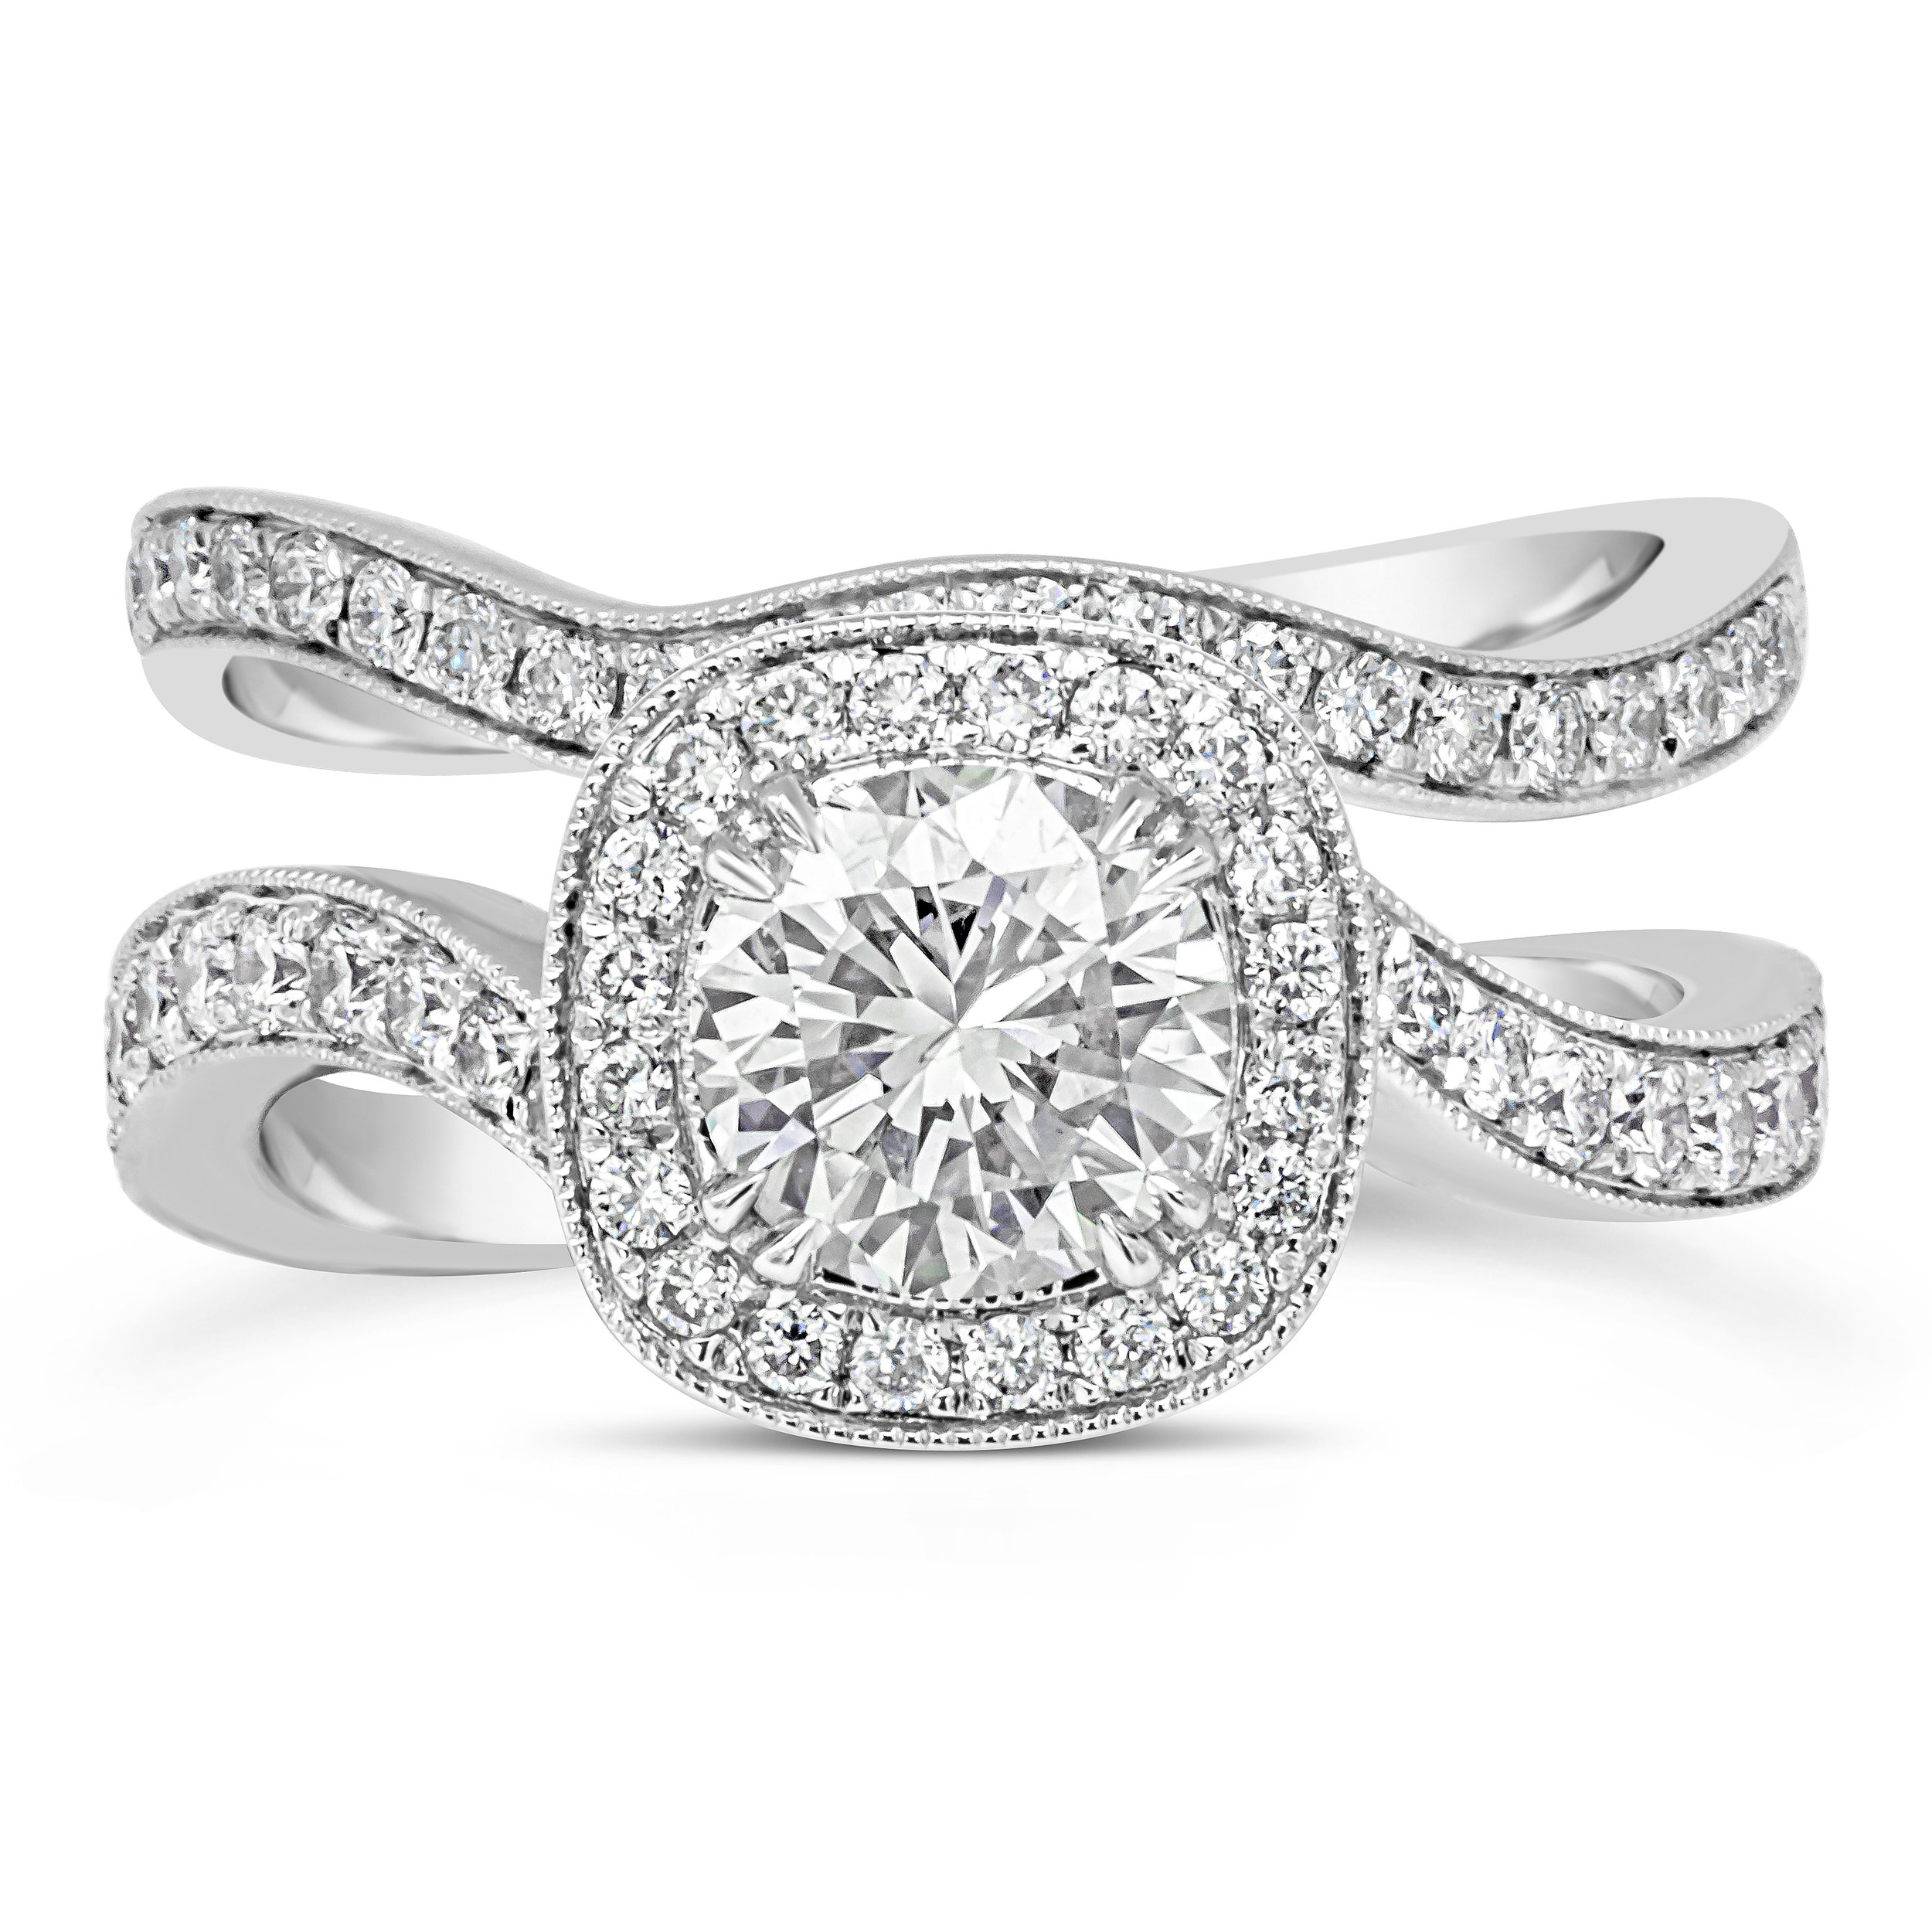 A custom-designed bypass halo engagement ring with a matching curved diamond wedding band.